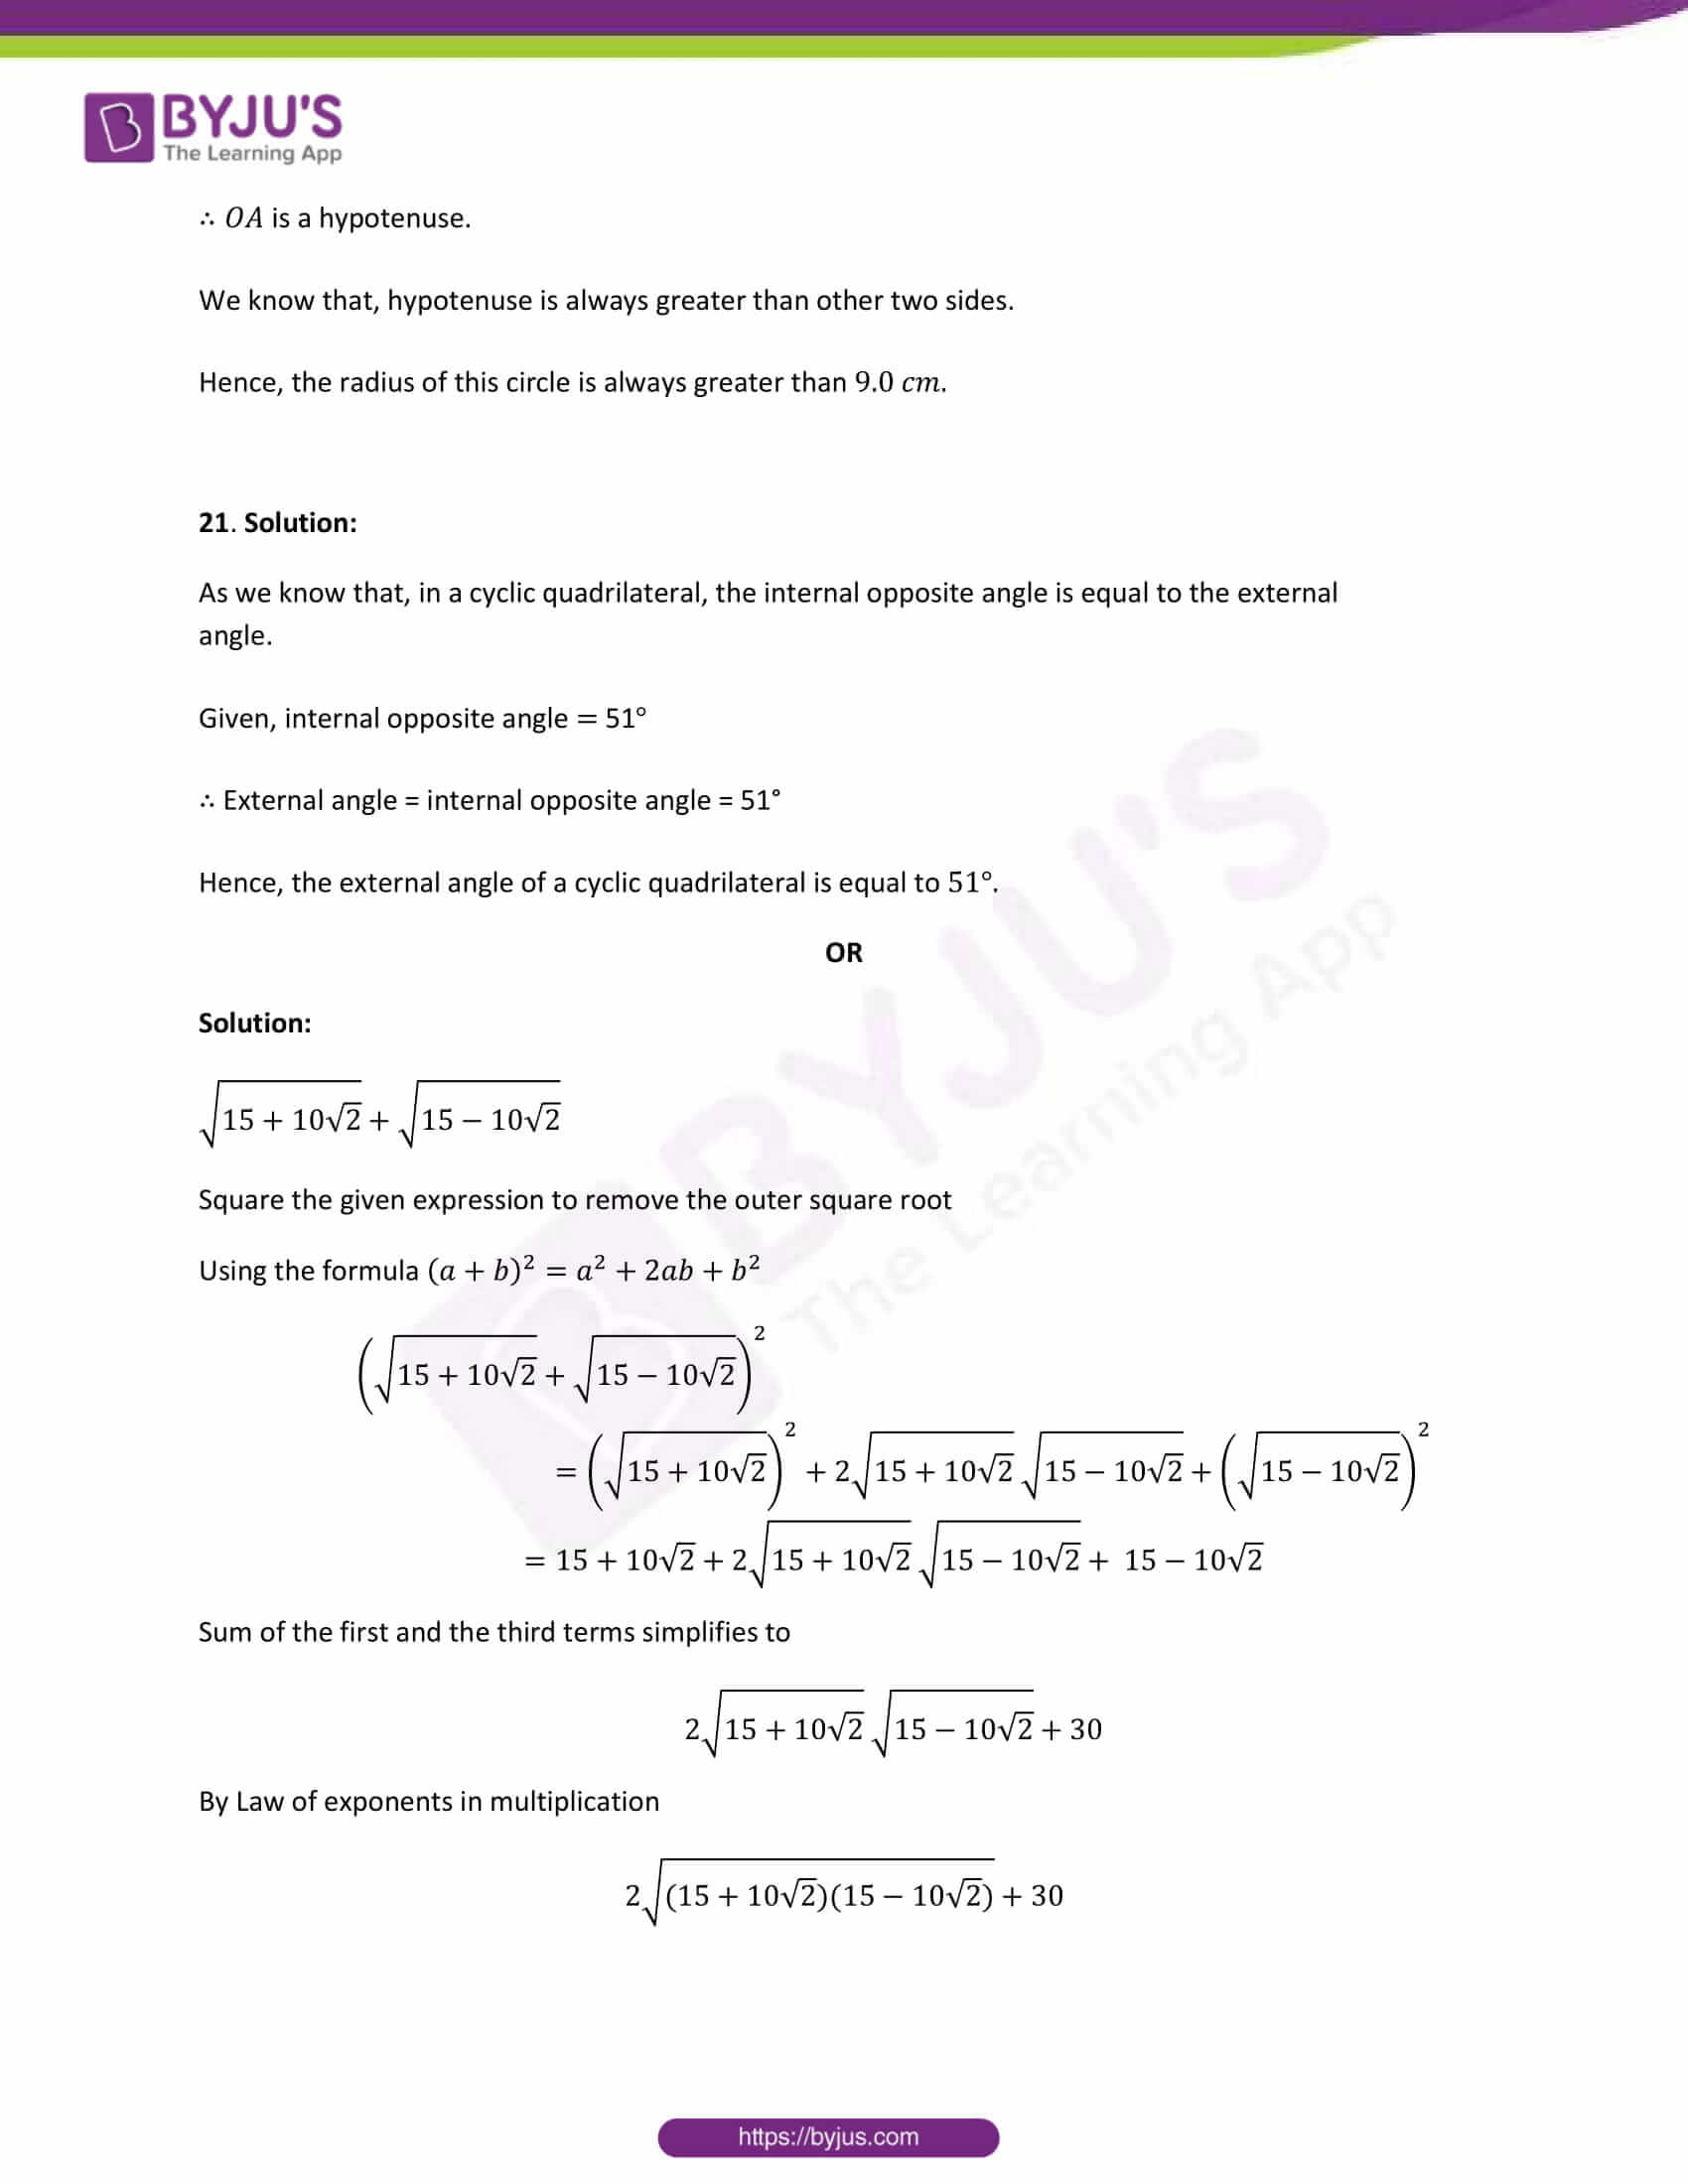 cbse sample paper solution class 9 maths set 1